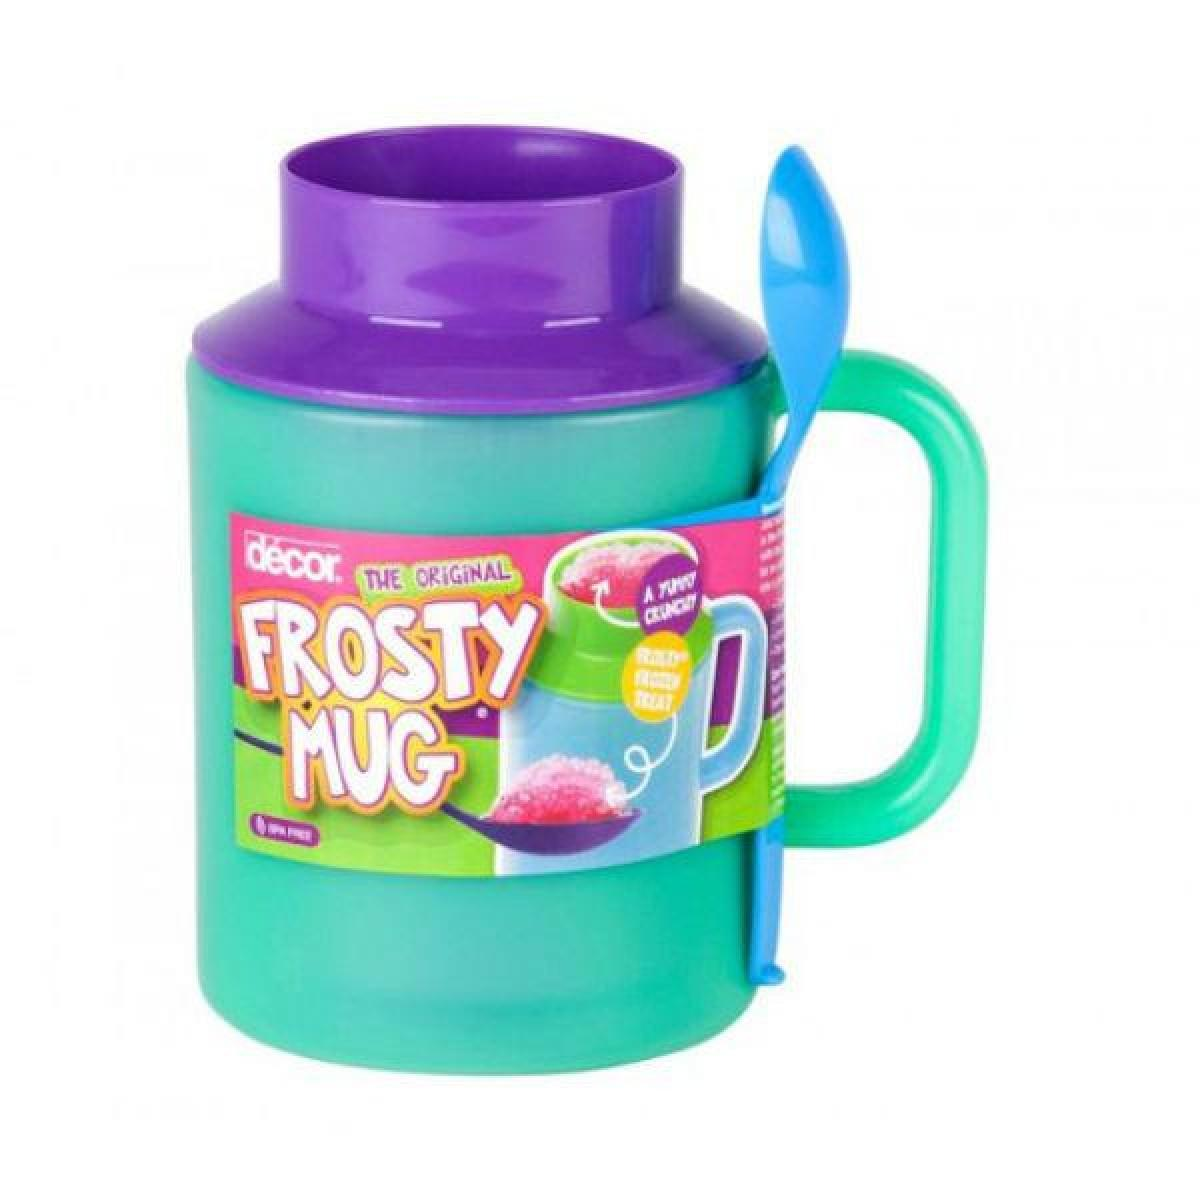 Decor Frosty Mug Orted